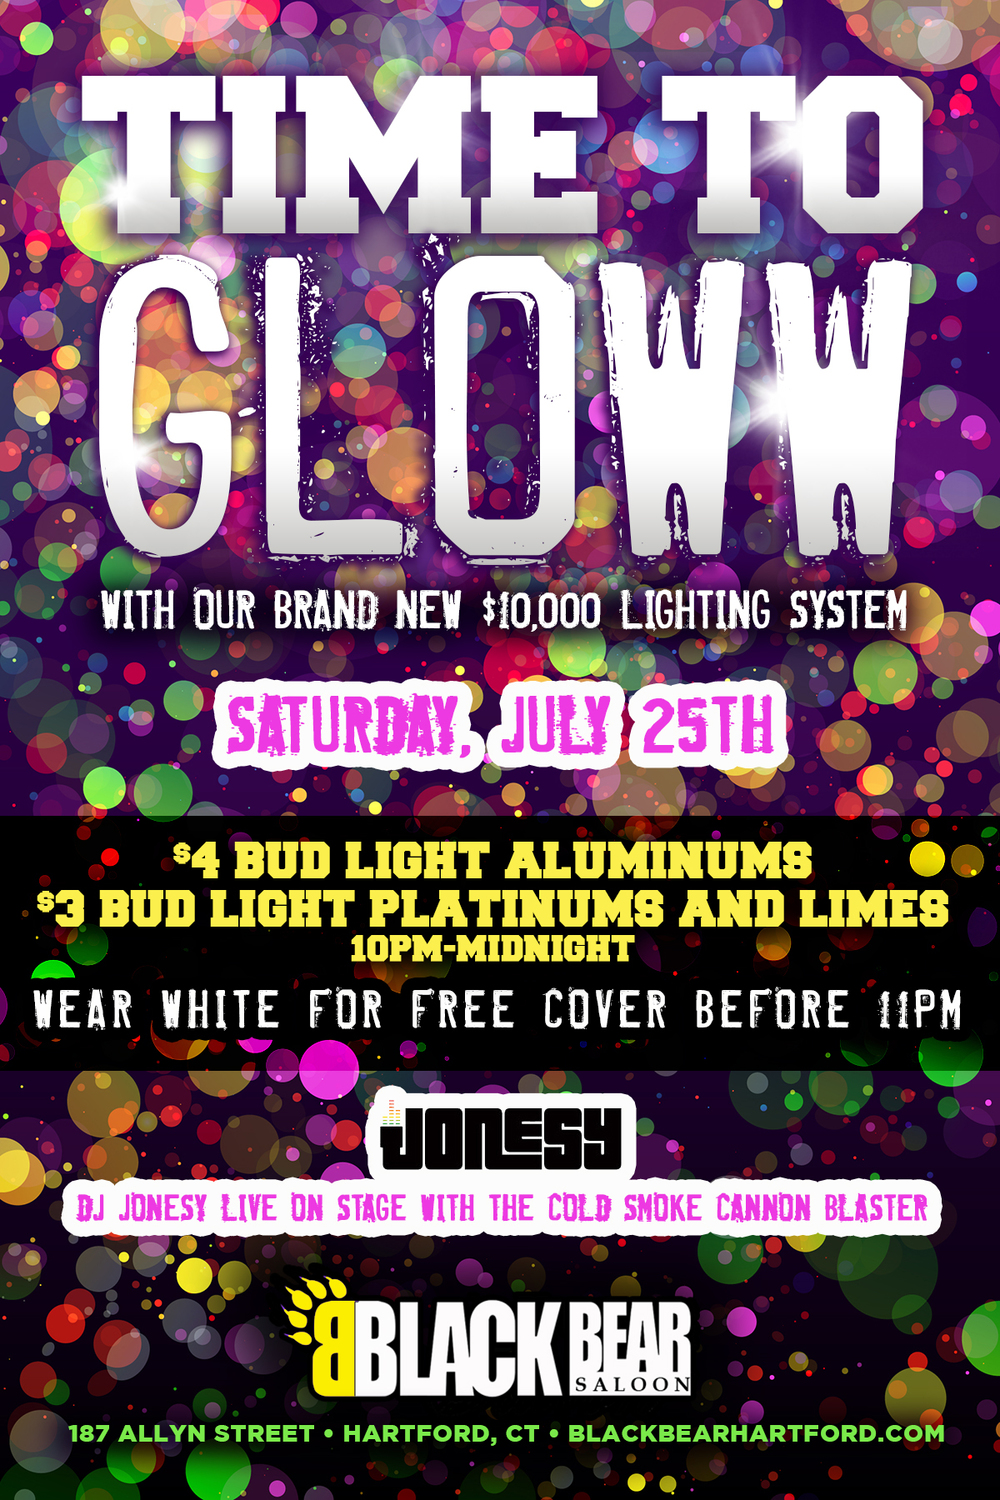 SATURDAY, JULY 25 join us at Black Bear Saloon for the monthly GLOW PARTY.  Wear white for free cover before 11pm.  $4 Bud Light Aluminums, $3 Bud Light Platinums and Limes until Midnight.  Club Cannon + Music by JONESY!